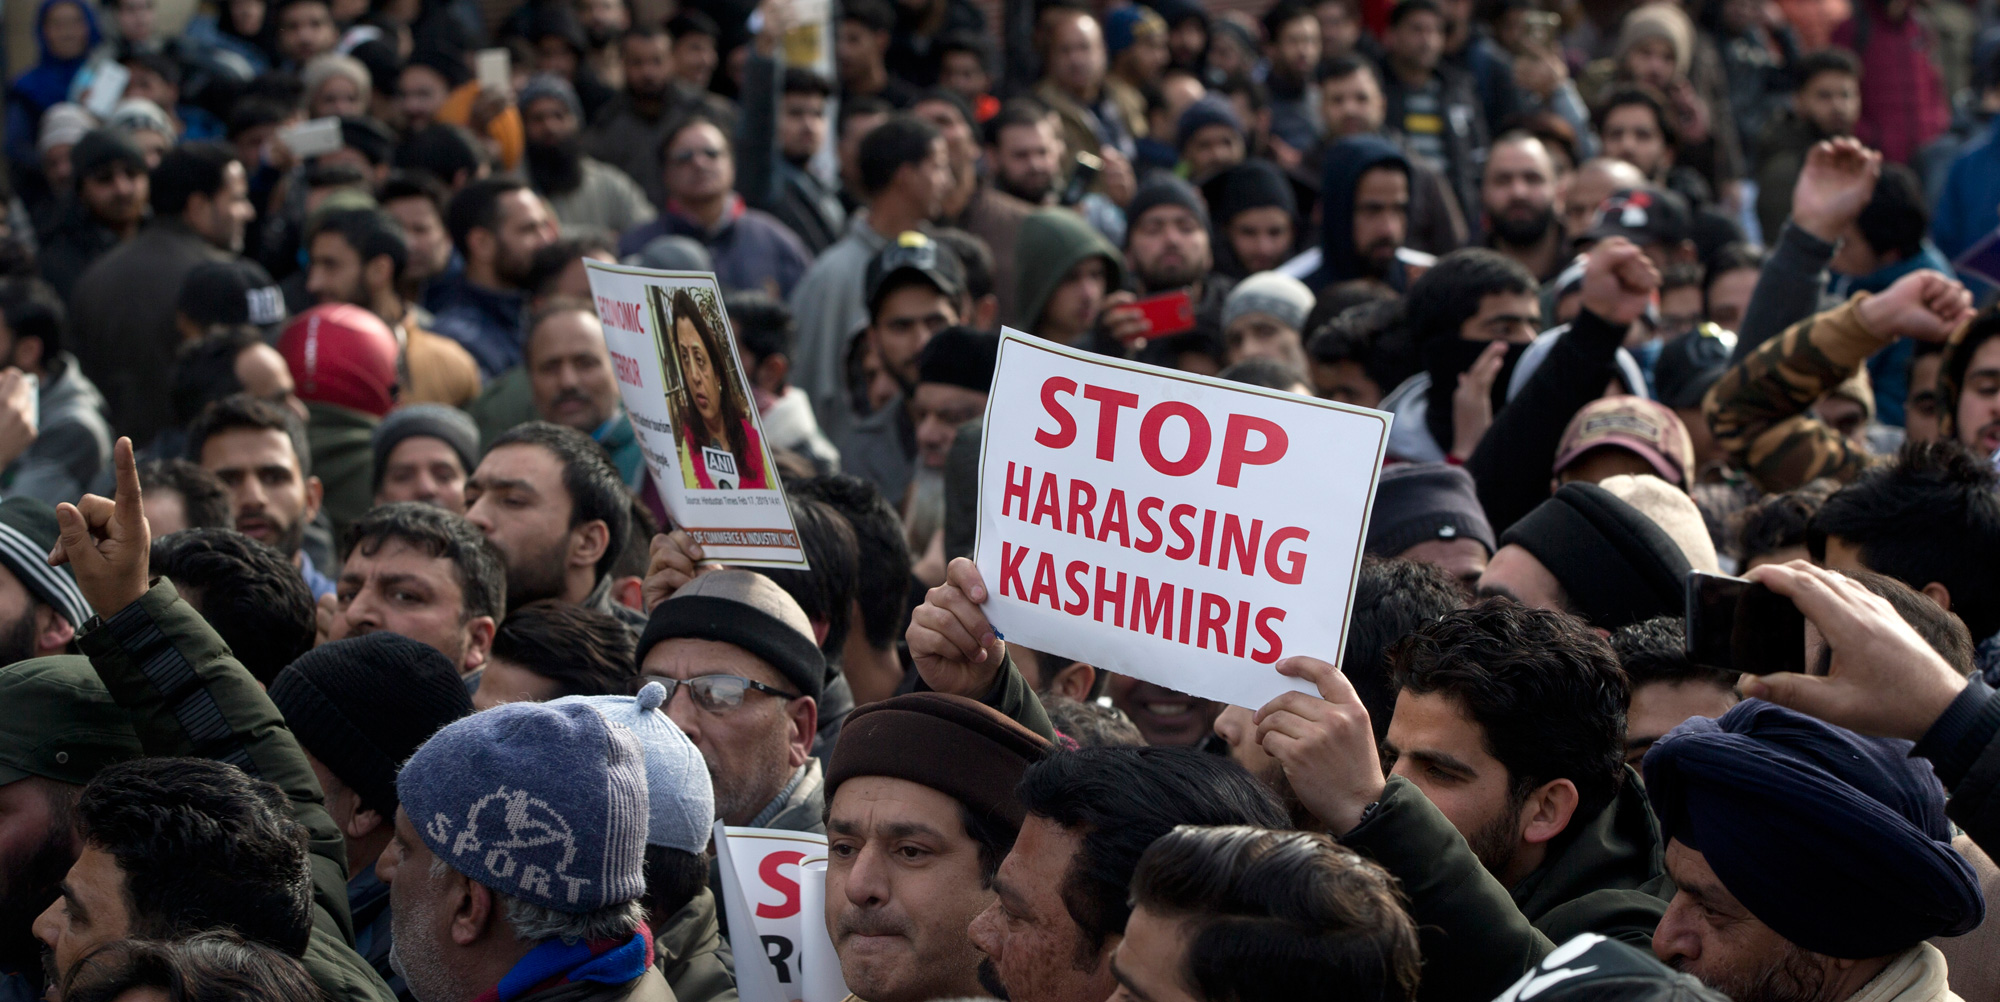 Kashmiri traders participate in a protest against targeting of Kashmiri Muslims in India, in Srinagar, on Friday, February 22, 2019.